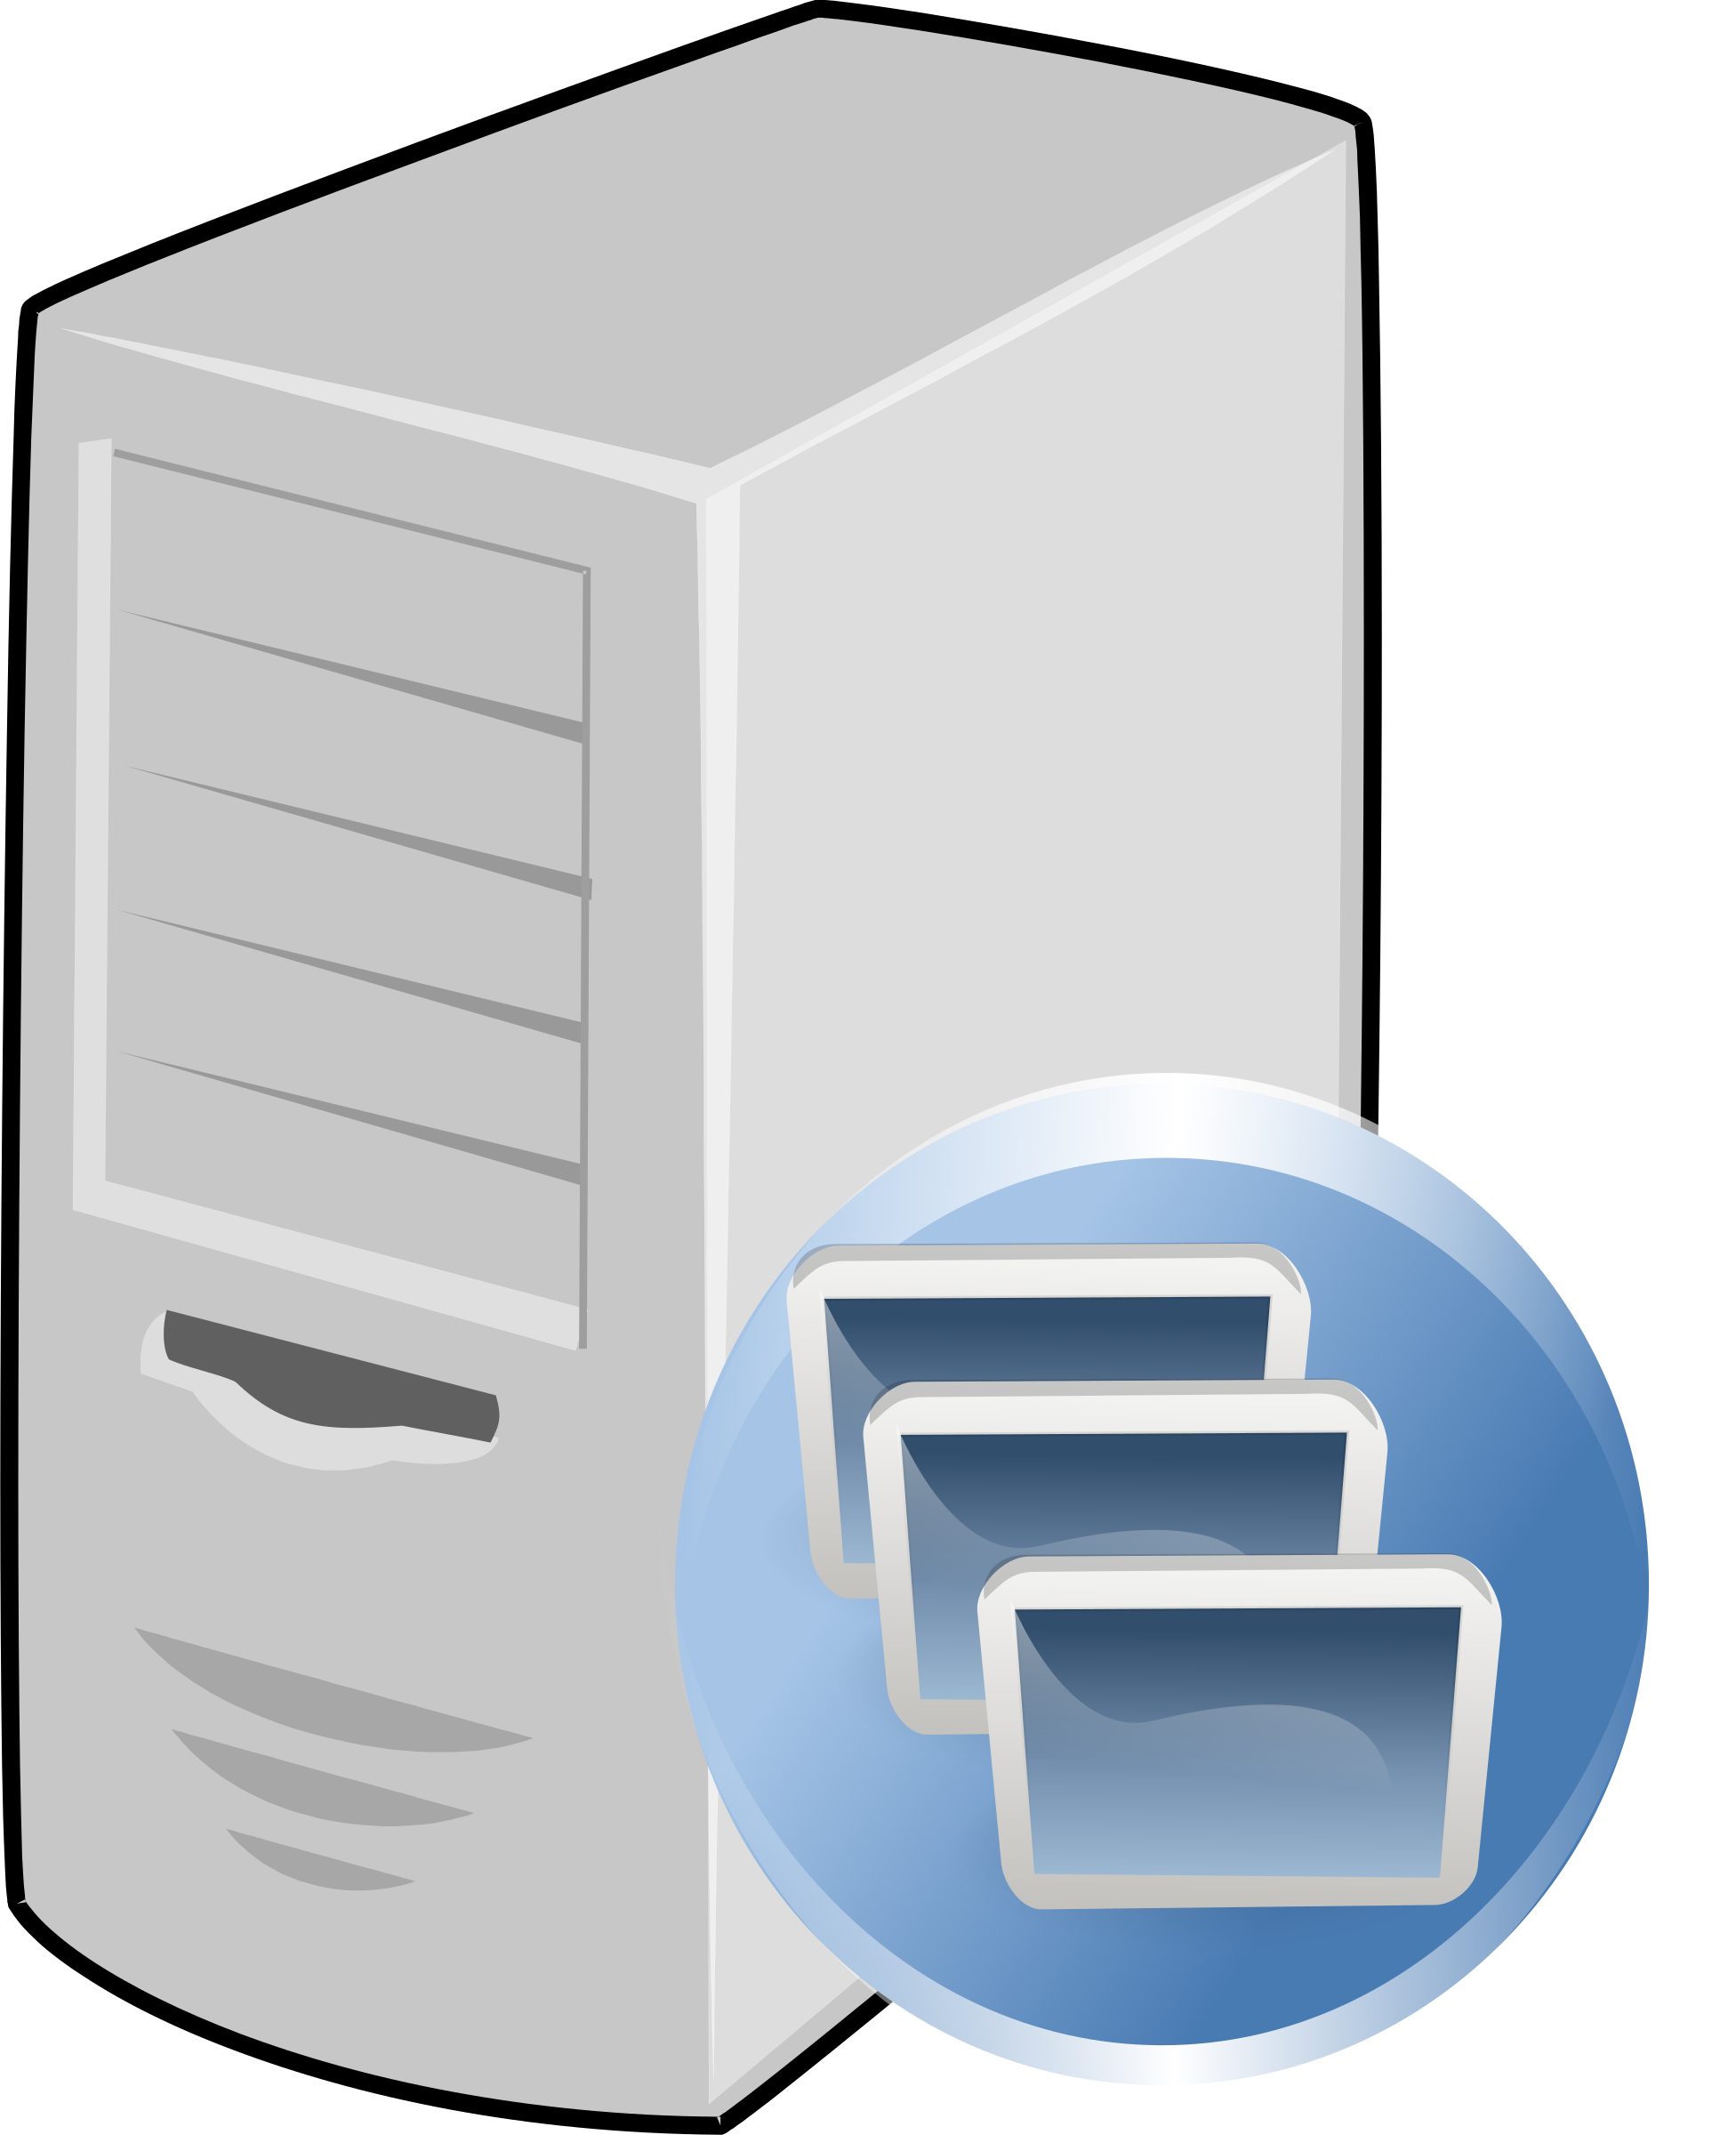 Server clipart server icon. Application icons png free